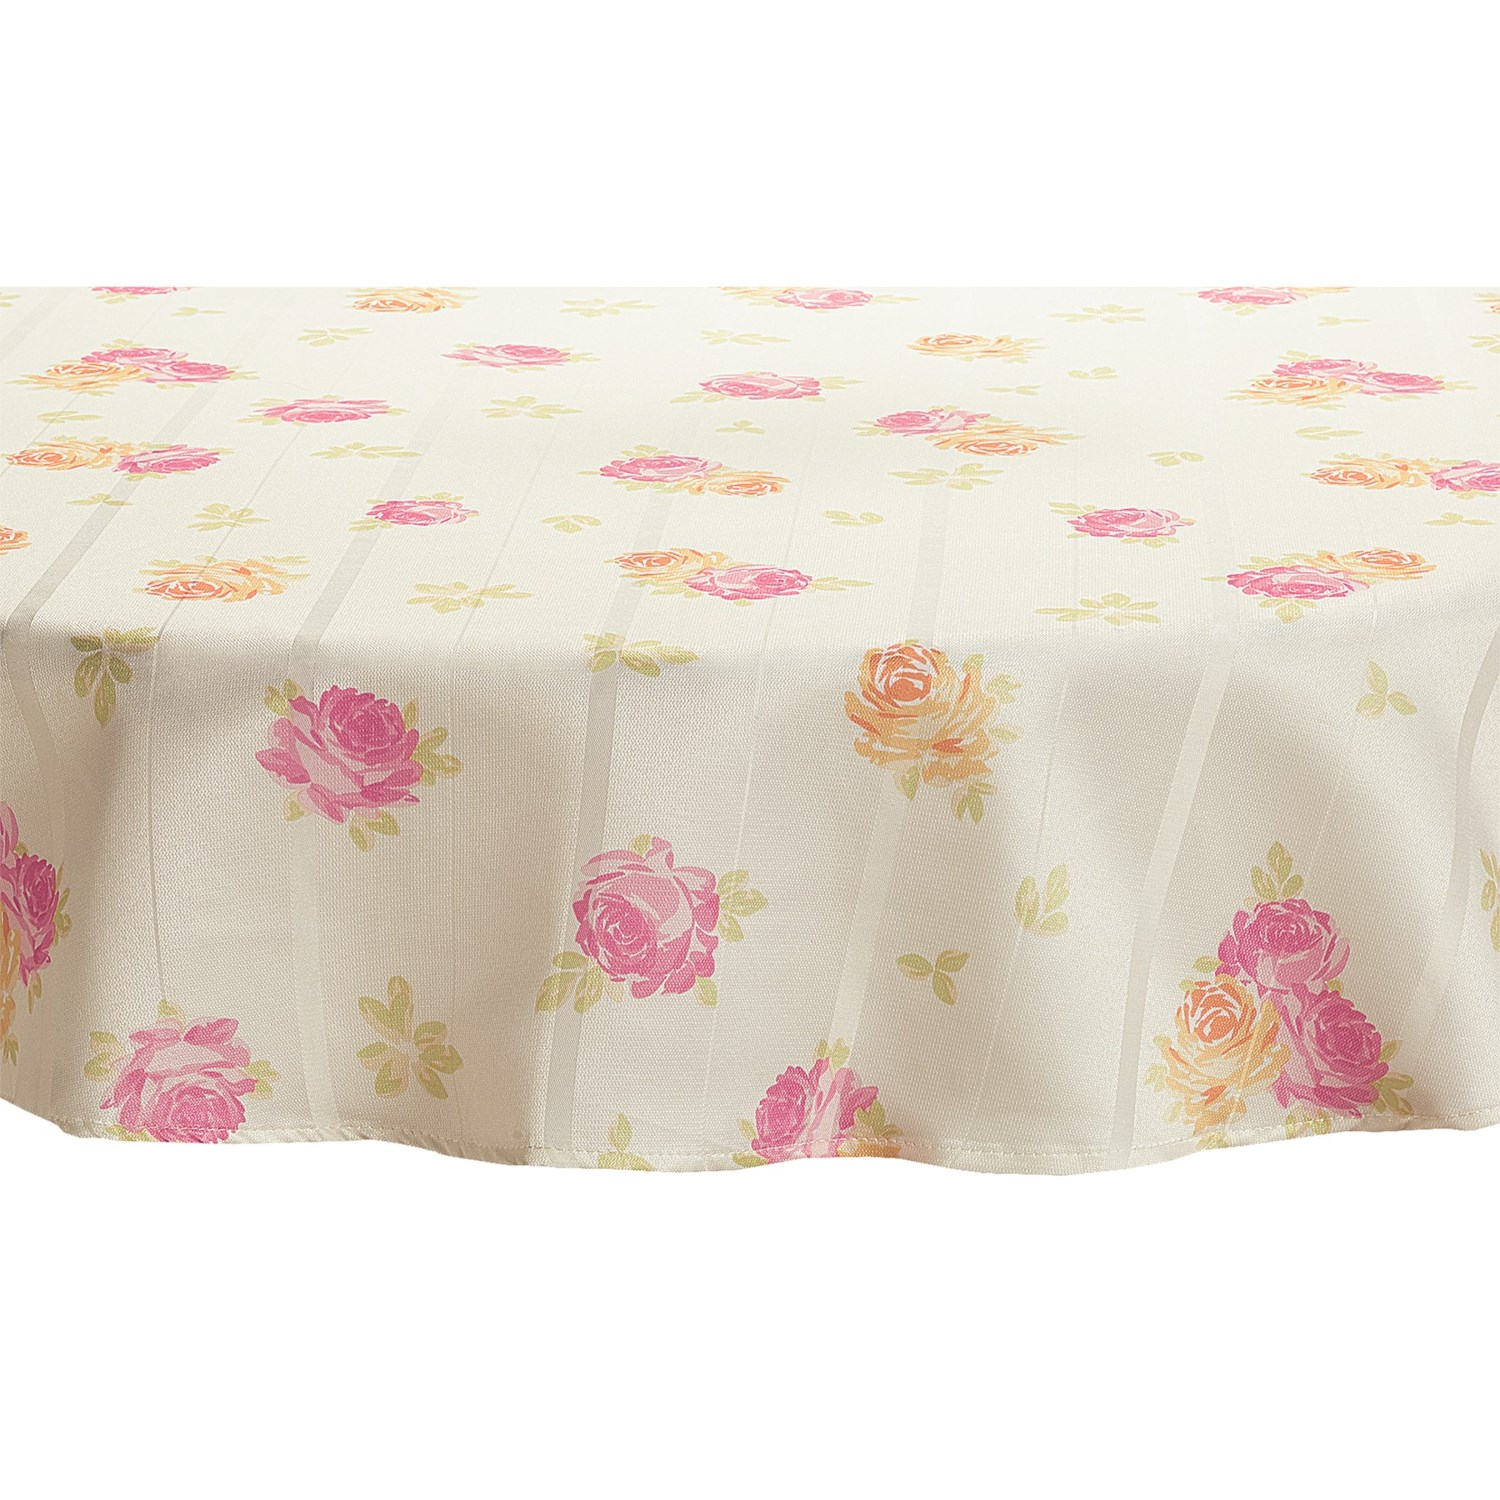 Oval Tablecloths Bing Images